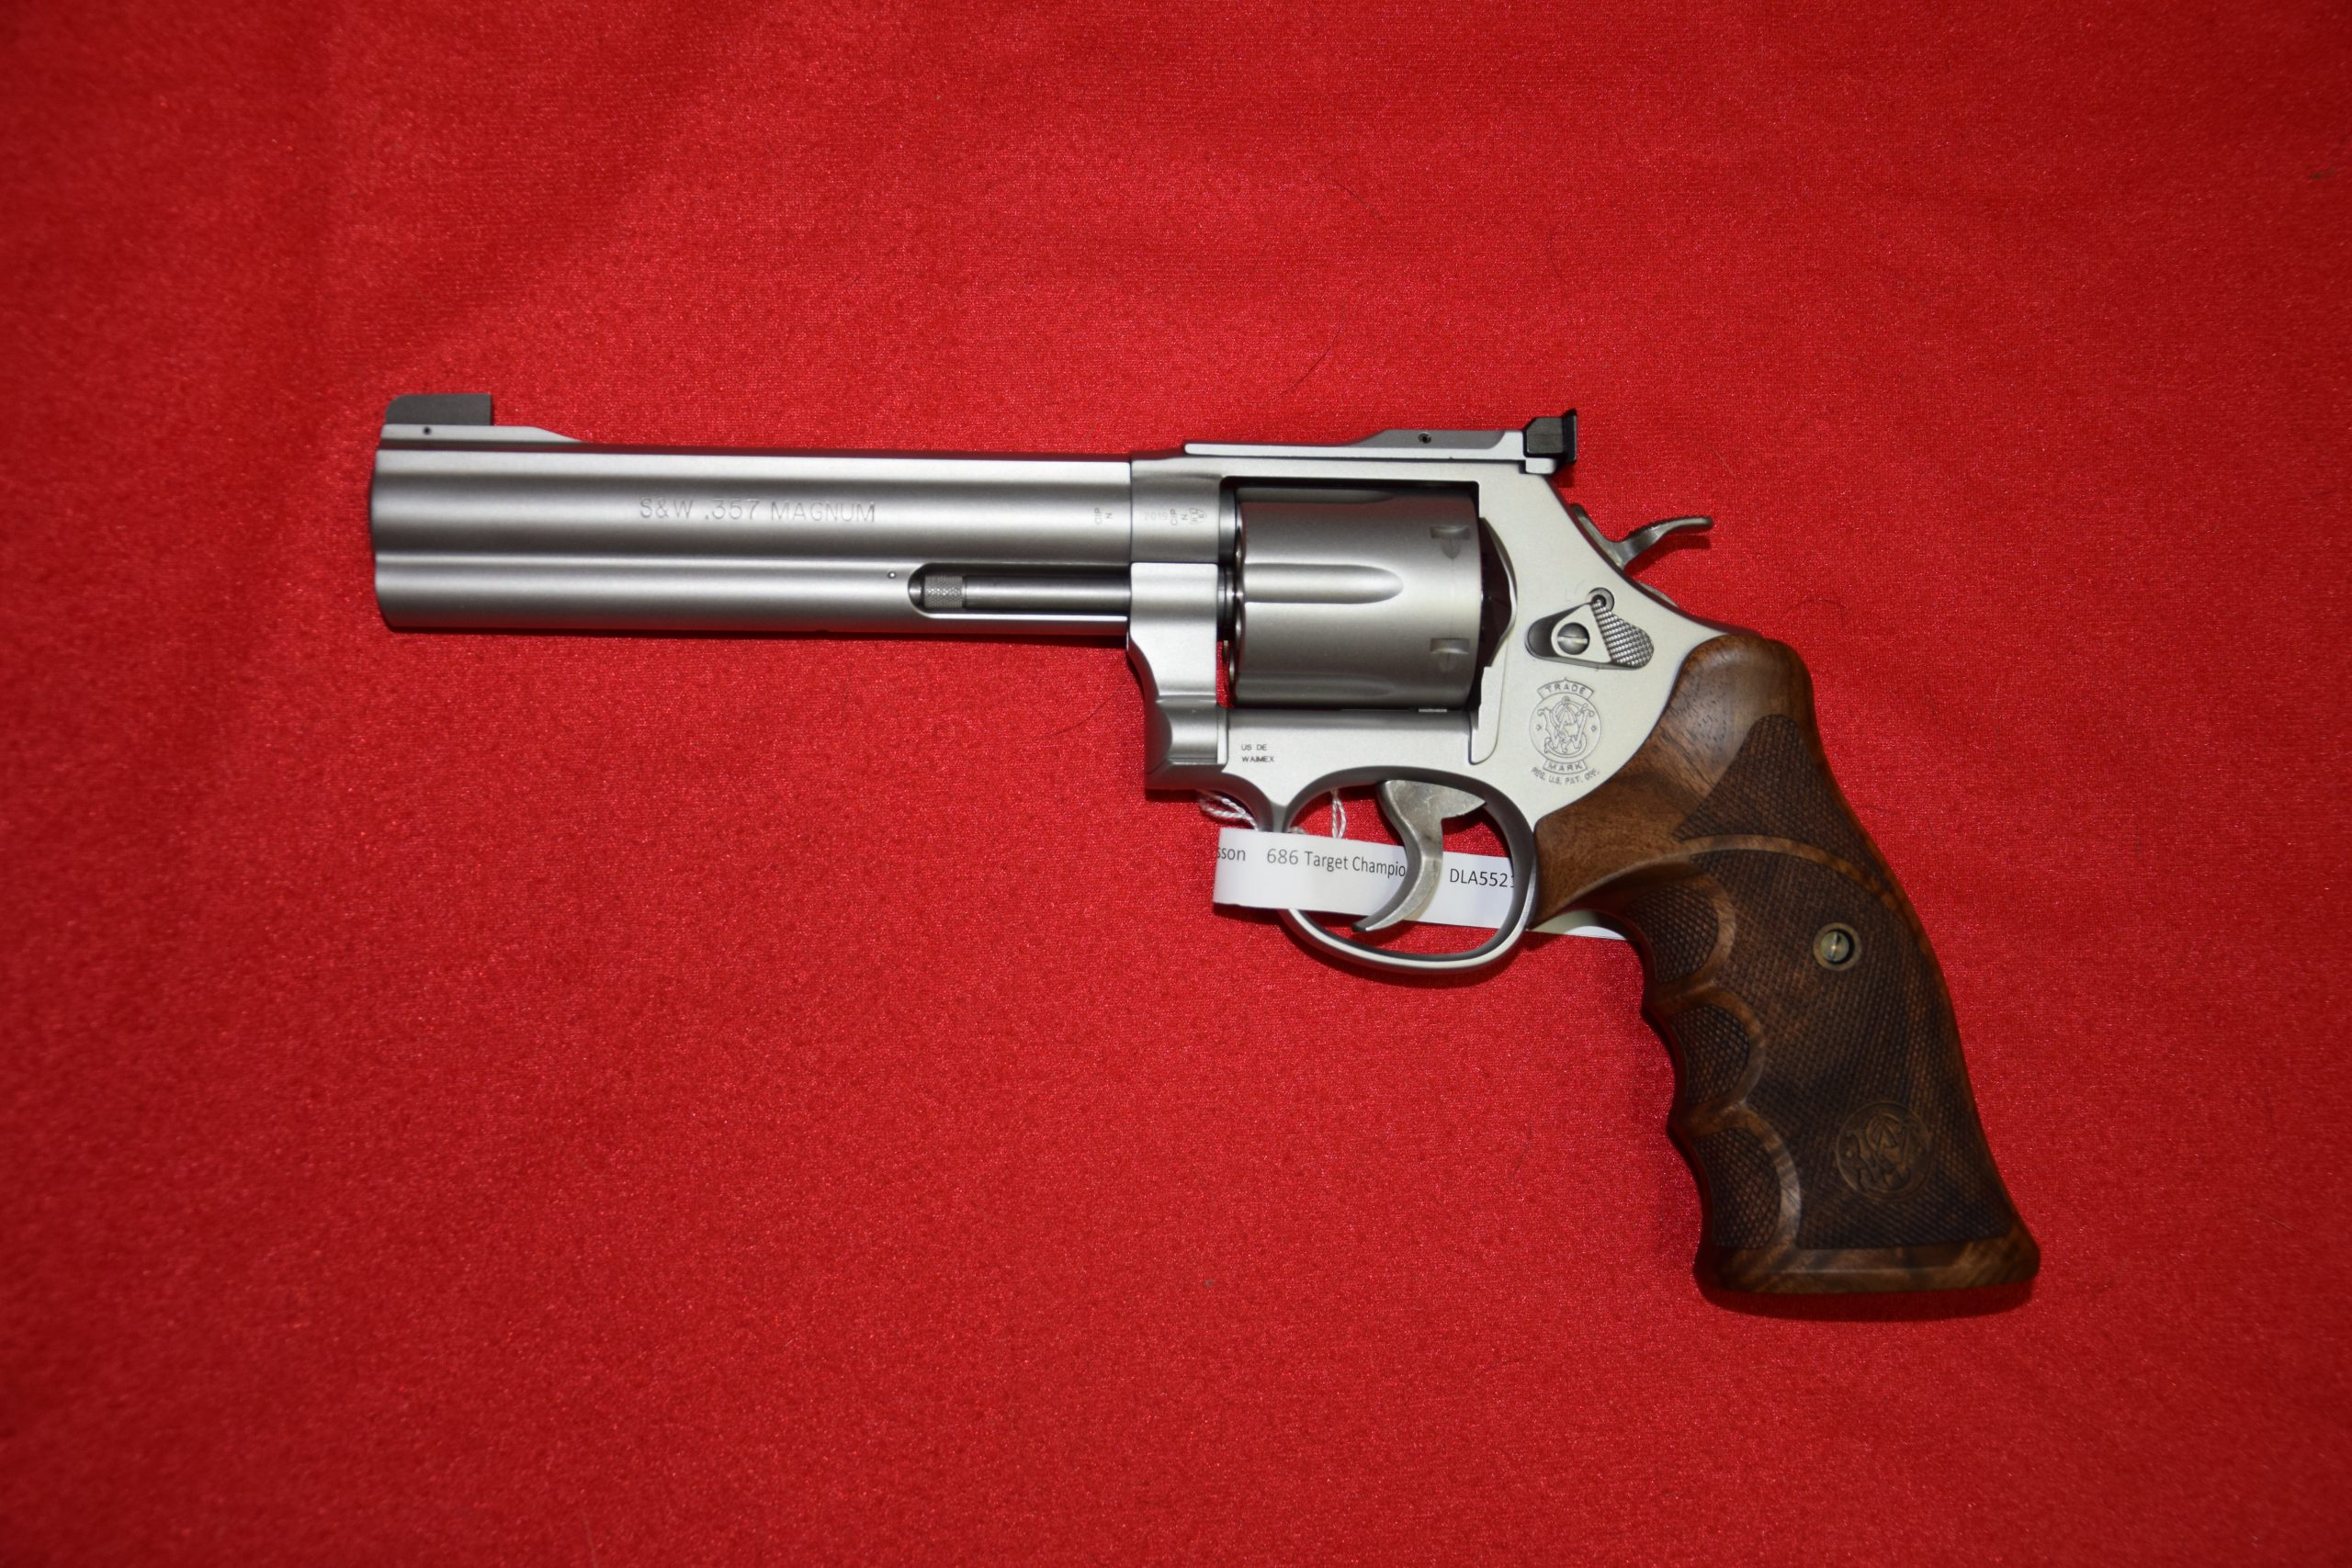 Smith&Wesson Revolver 686-6 Target Champion / .357mag